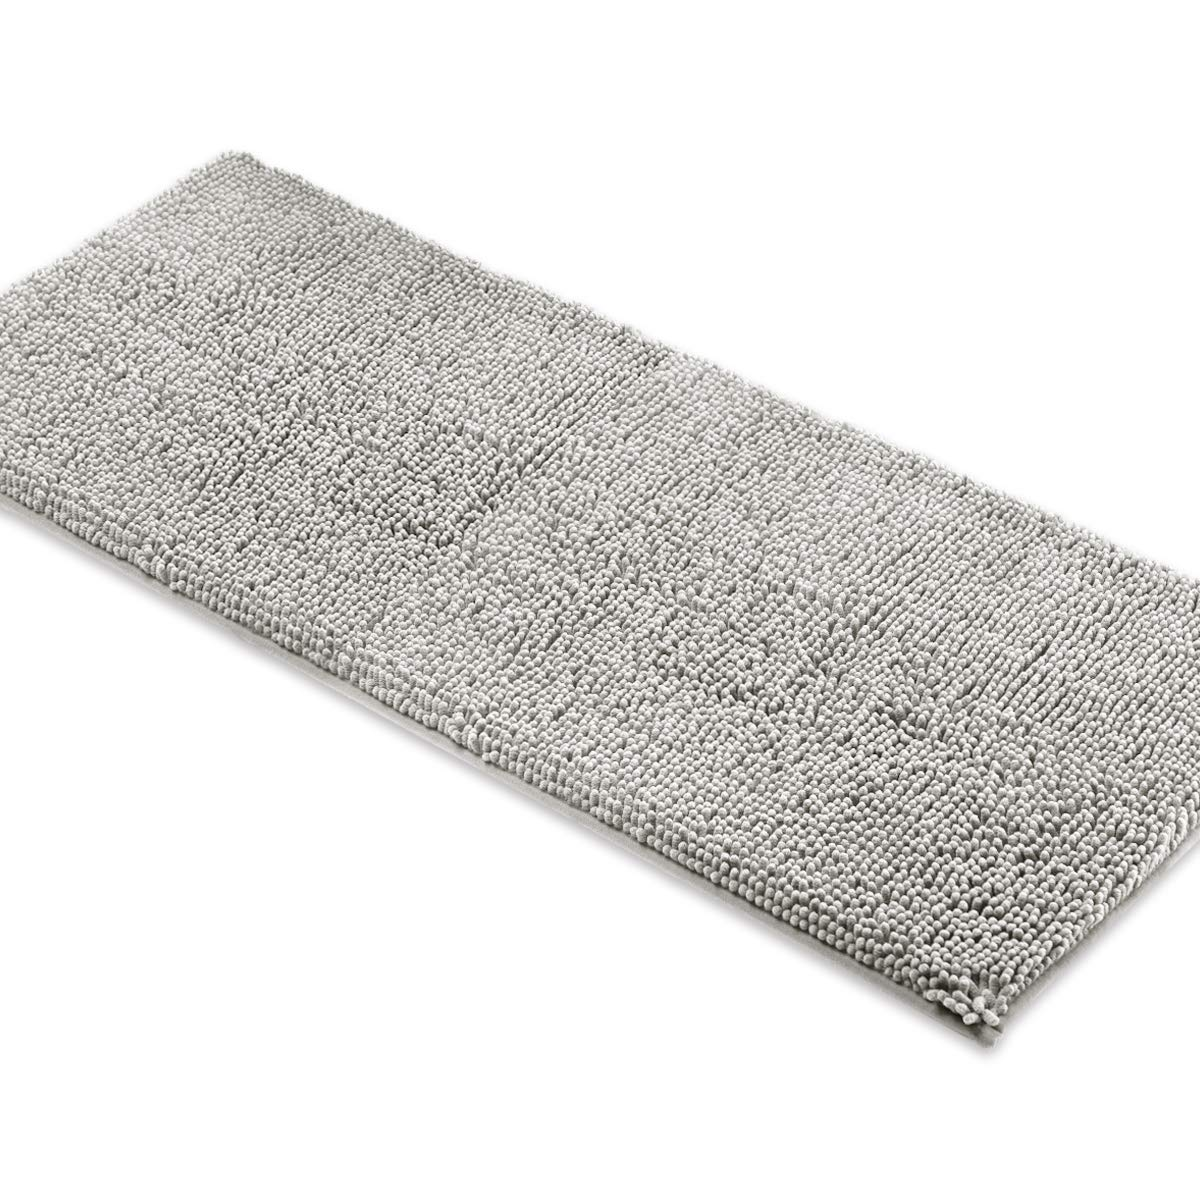 MAYSHINE Bath mat Runners for Bathroom Rugs,Long Floor mats,Extra Soft, Absorbent, Thickening Shaggy Microfiber,Machine-Washable, Perfect for Doormats,Tub, Shower (27.5x47 inches, Light Gray)